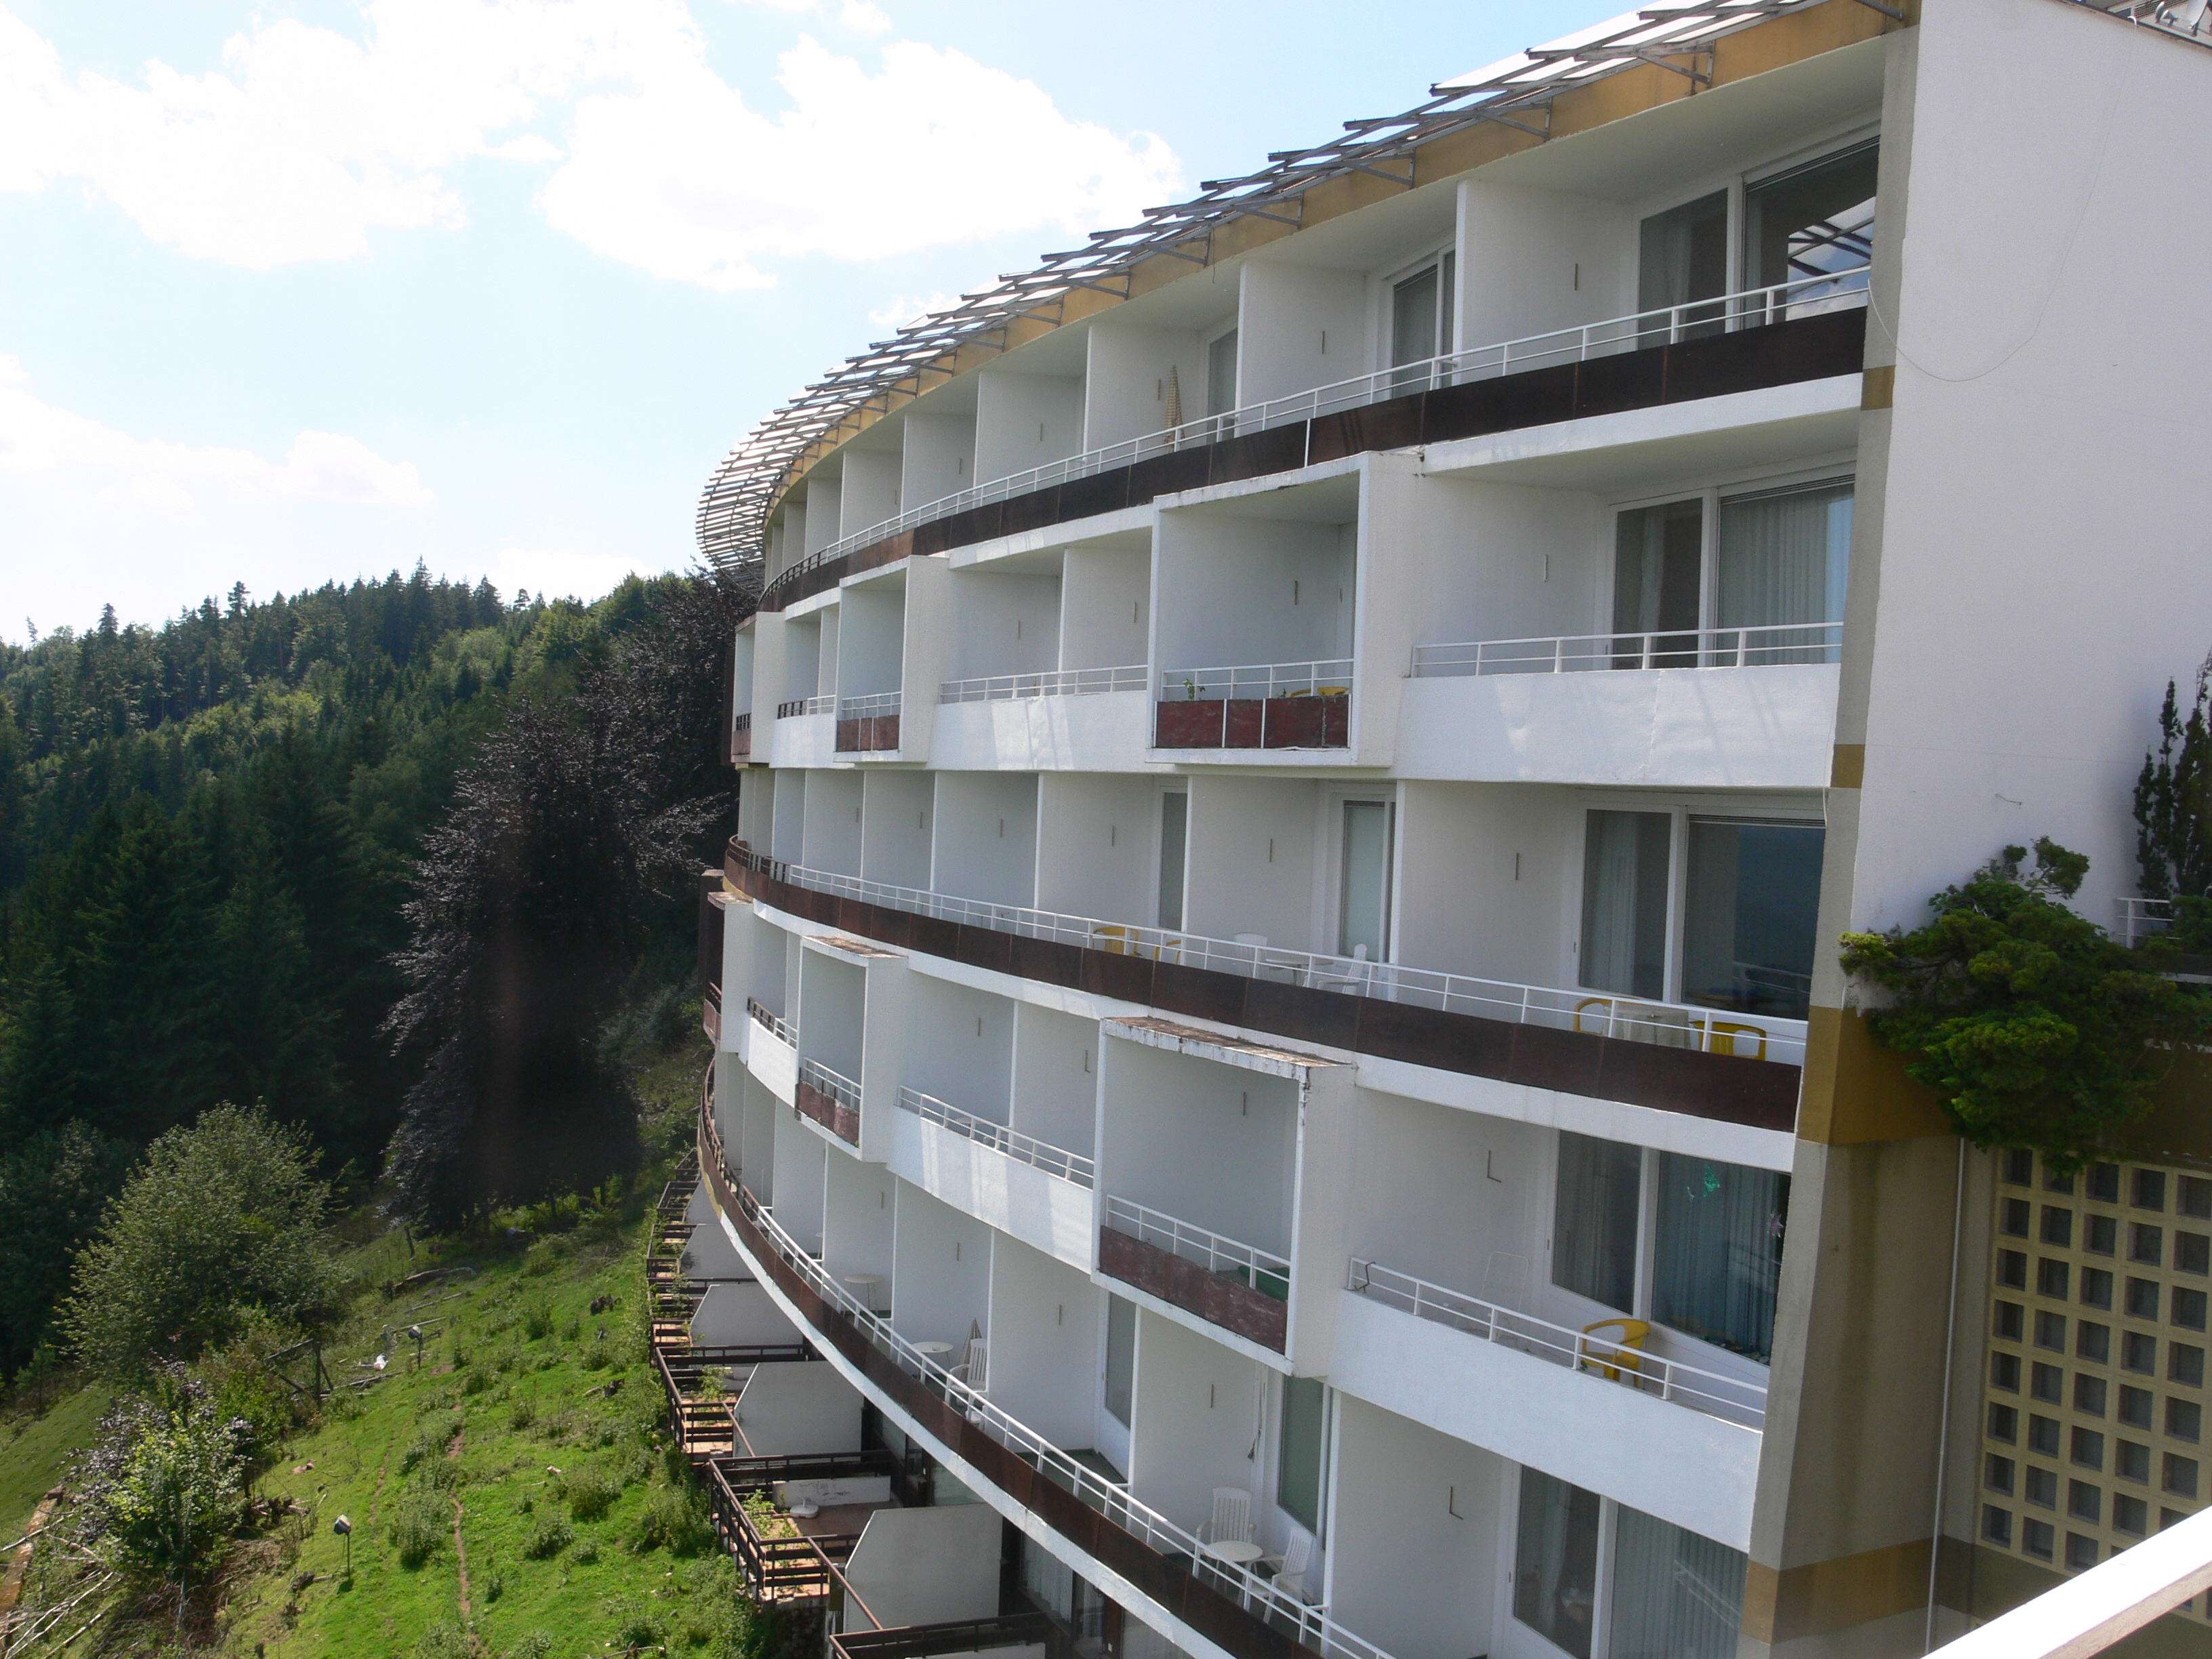 Bad Wildbad Hotel Uhlandshohe